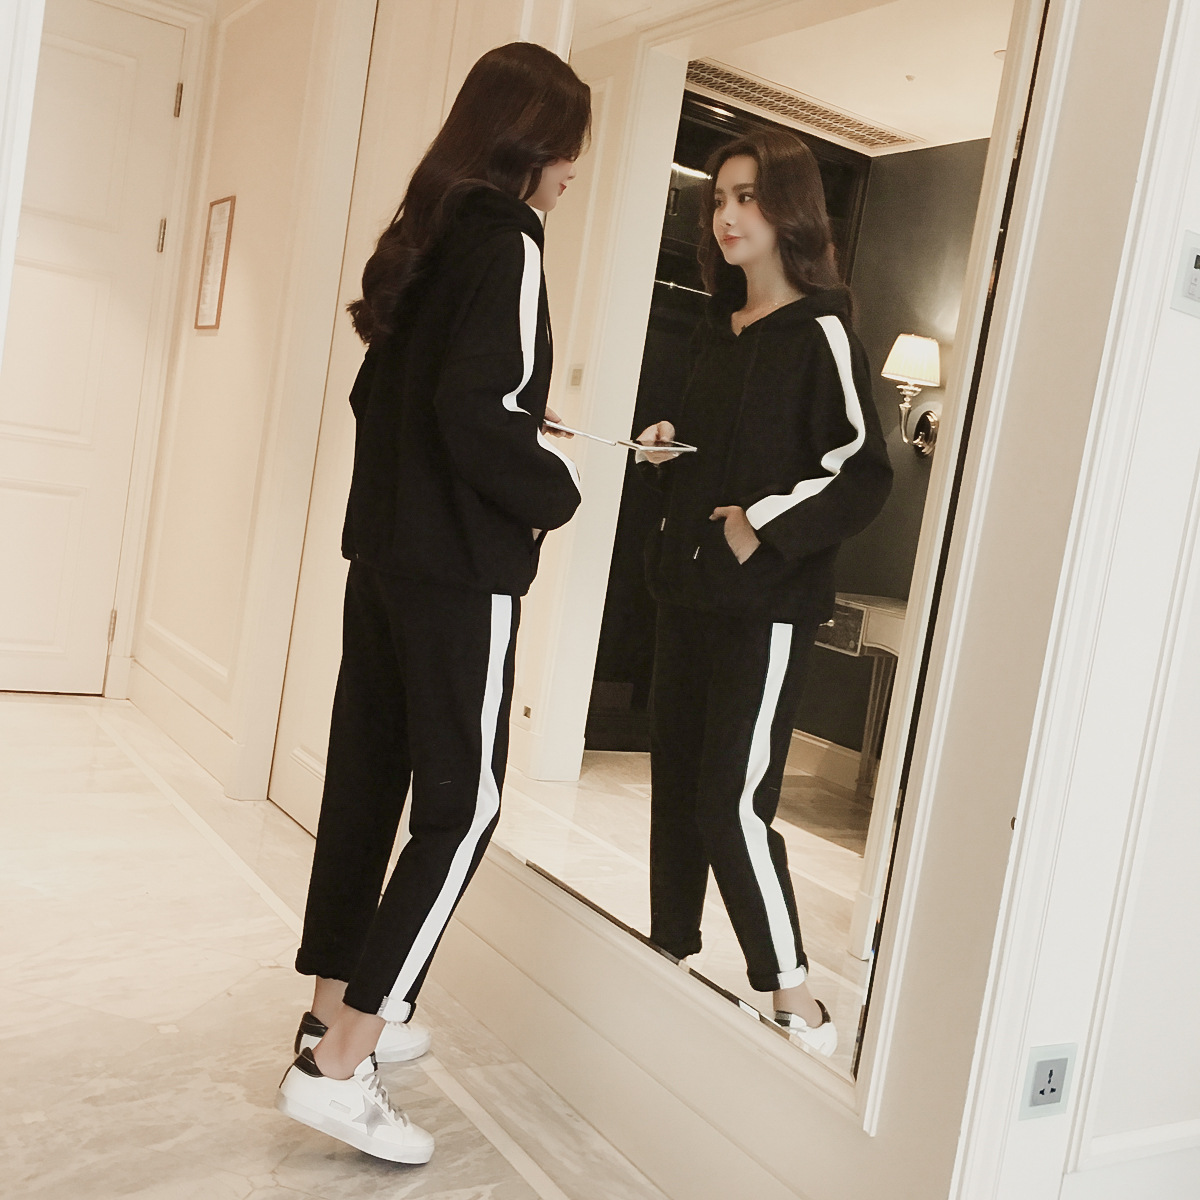 Hoodie 2019 Women's Spring And Autumn New Style Korean-style Loose-Fit Hooded Students Ulzzang Casual Sports Two-Piece Set Winte